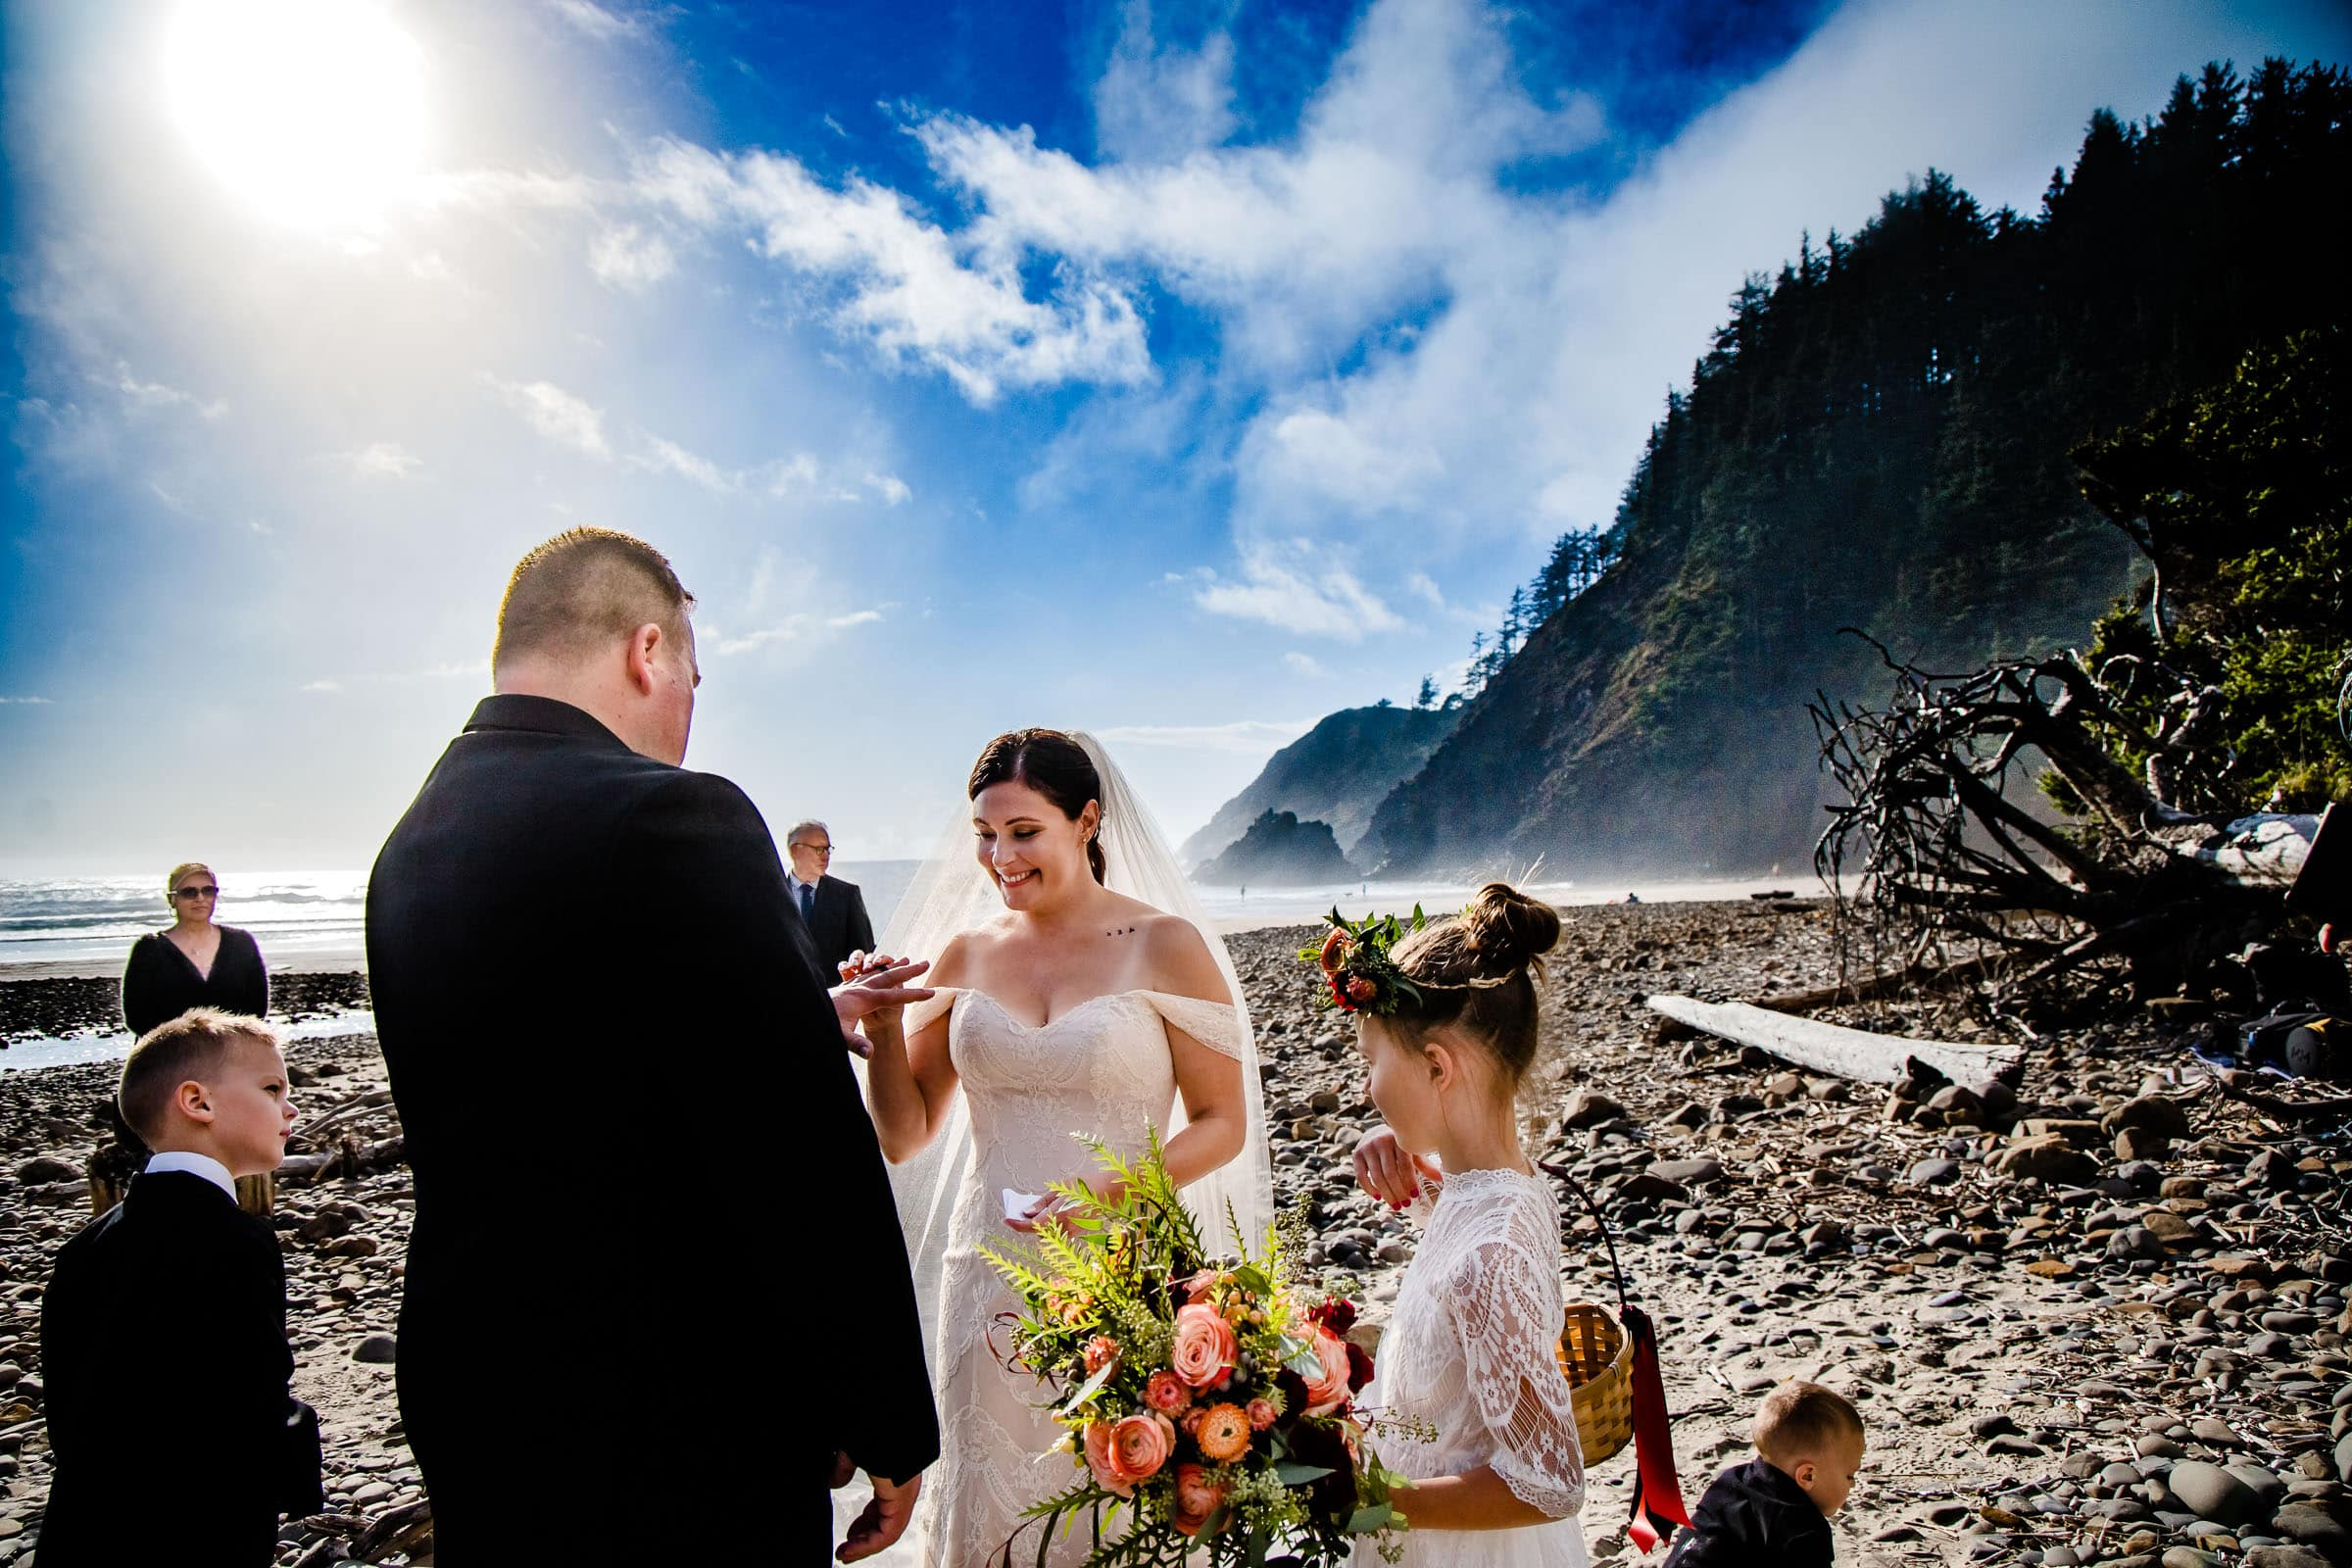 Cannon Beach elopement ceremony with rings being exchanged